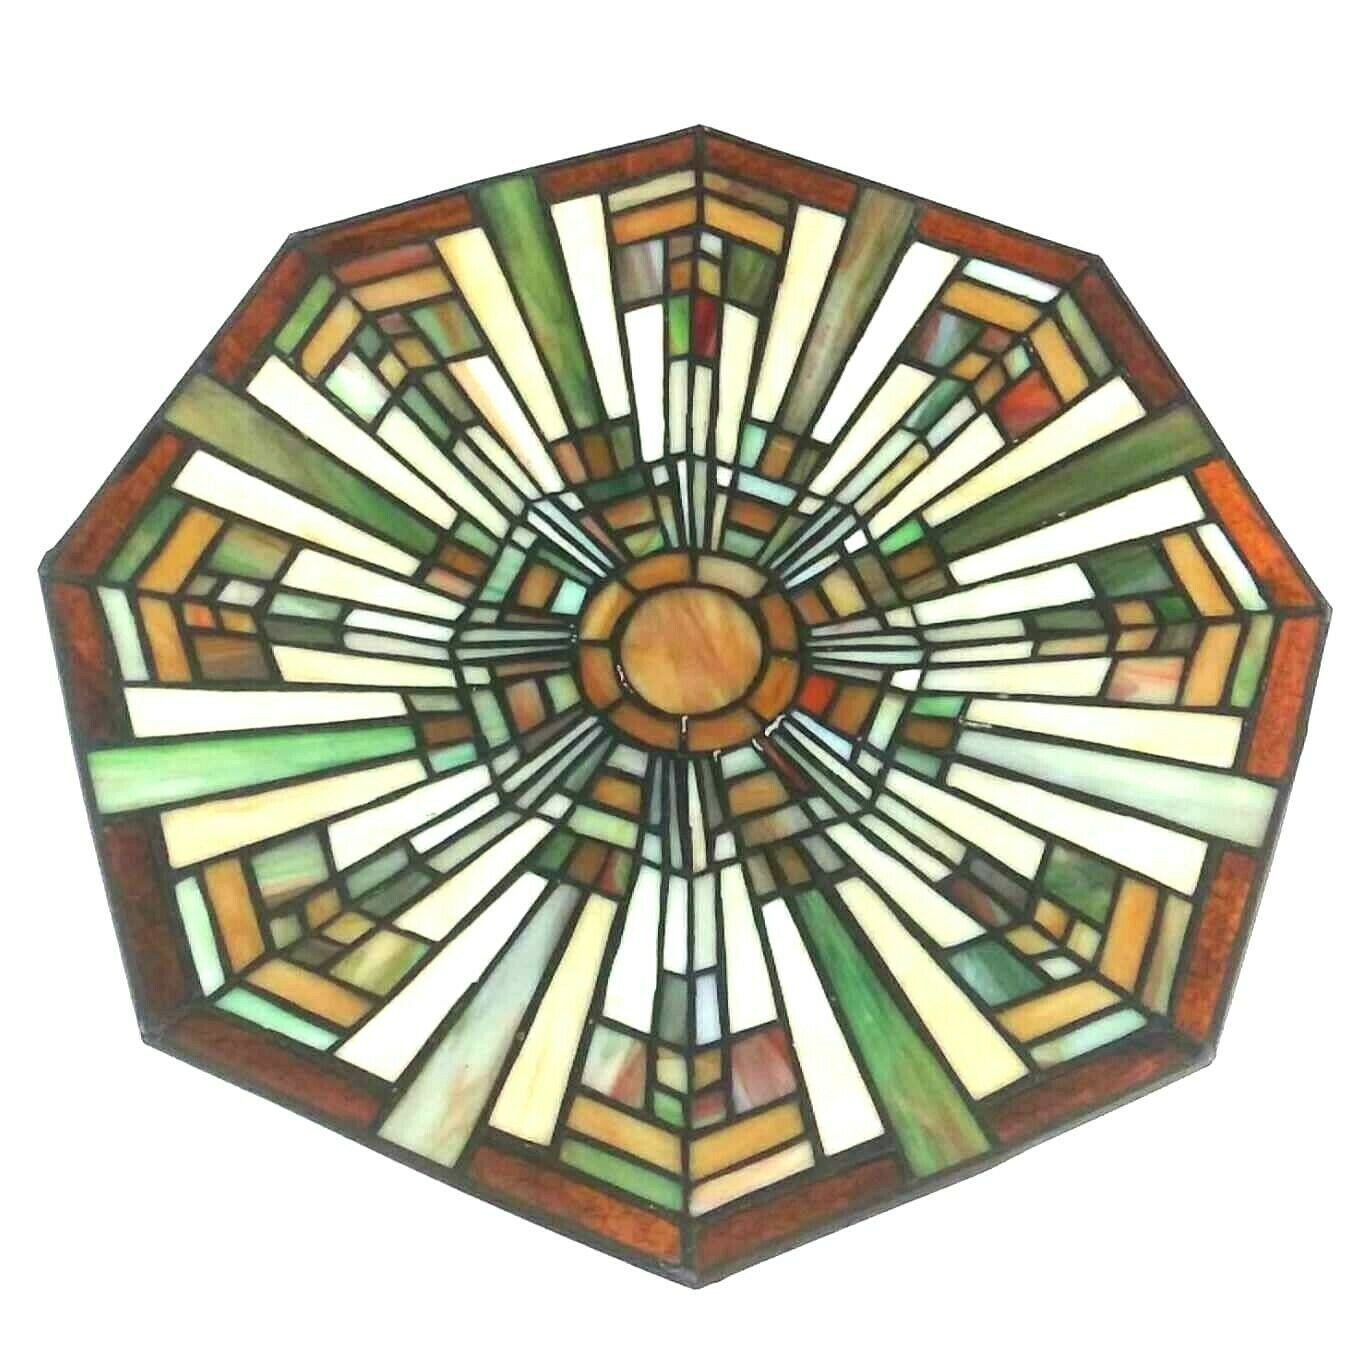 Quoizel Flush Mount Floating Stained Glass Craftsman Mission Style Light Shade - $51.96